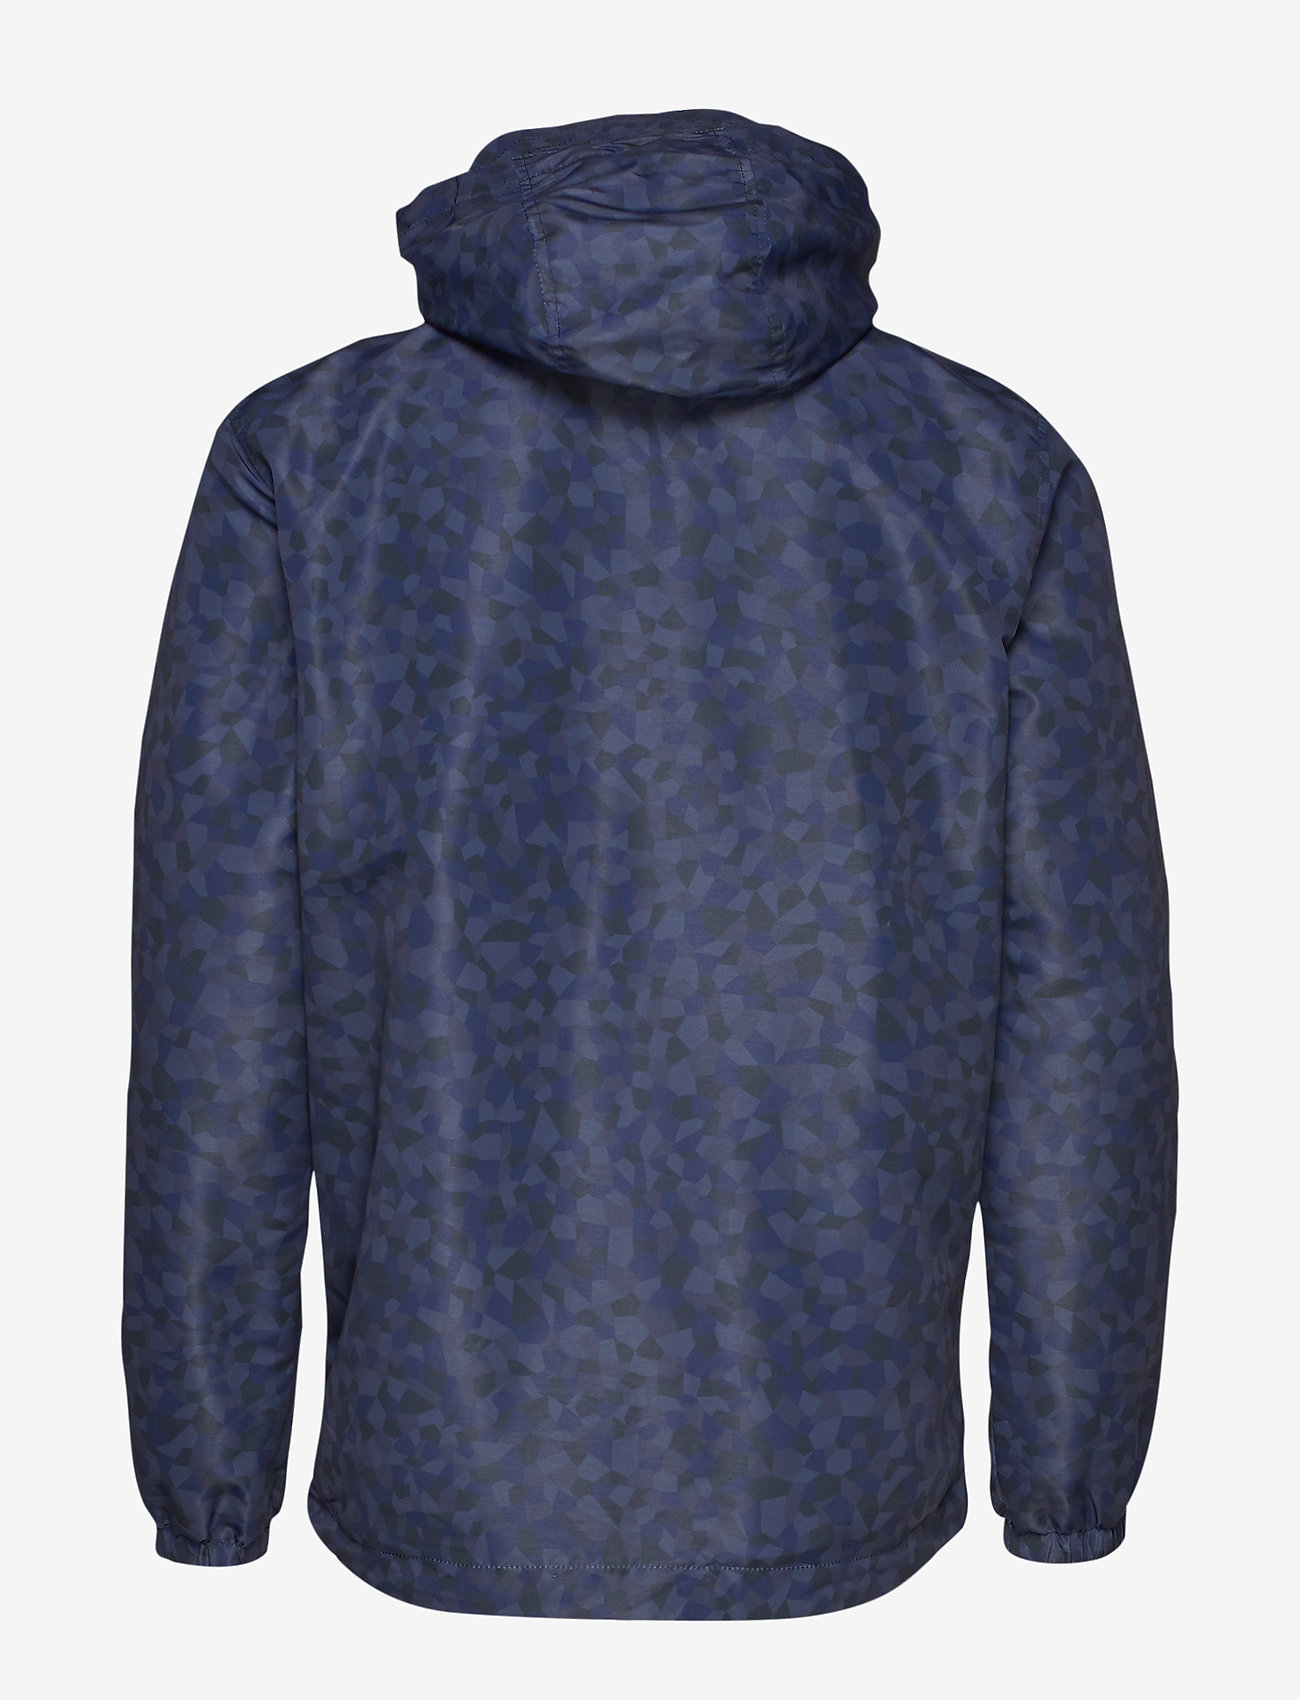 Lyle & Scott Geo Print Zip Through Hooded Jacket - Jakker og frakker NAVY GEO PRINT - Menn Klær